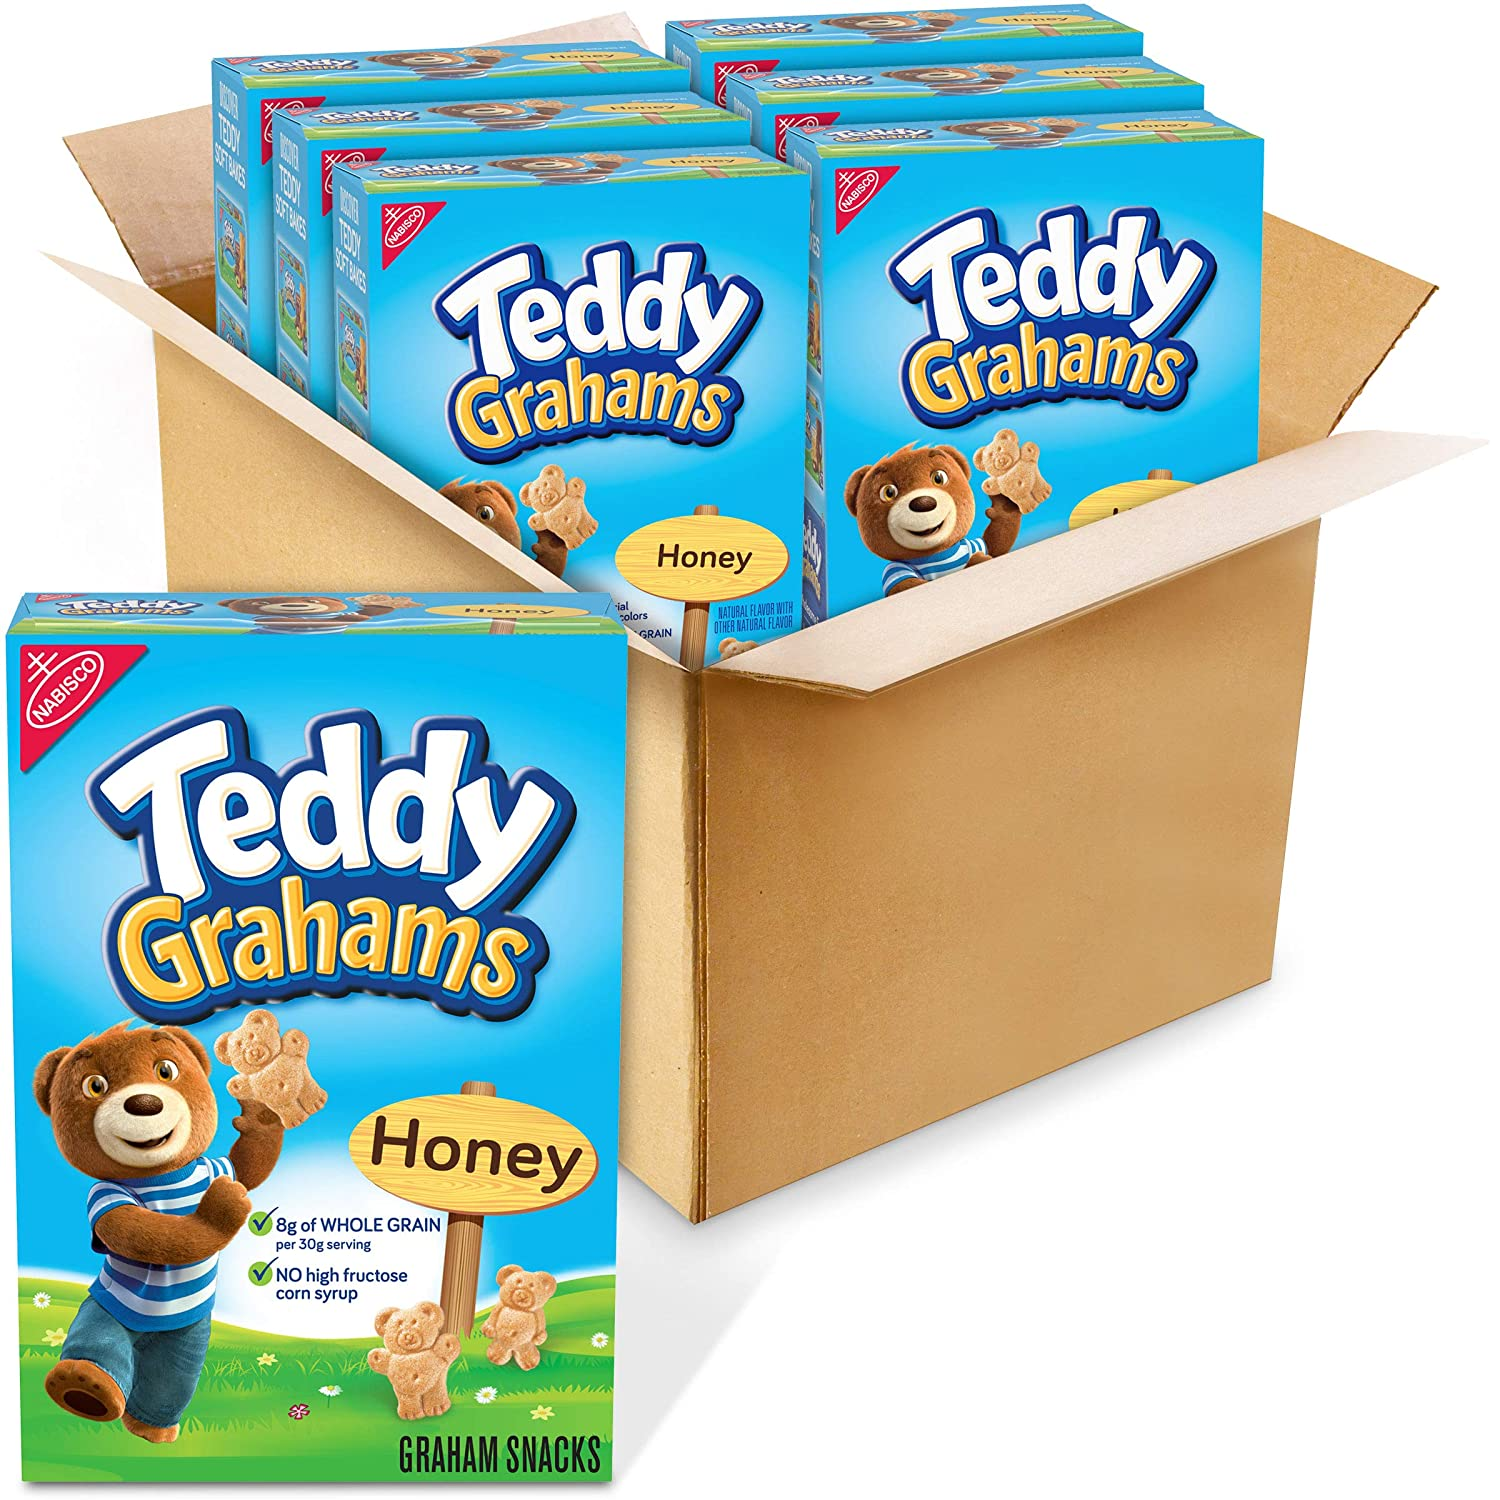 Teddy Grahams Honey Graham Snacks, 6 - 10 oz Boxes